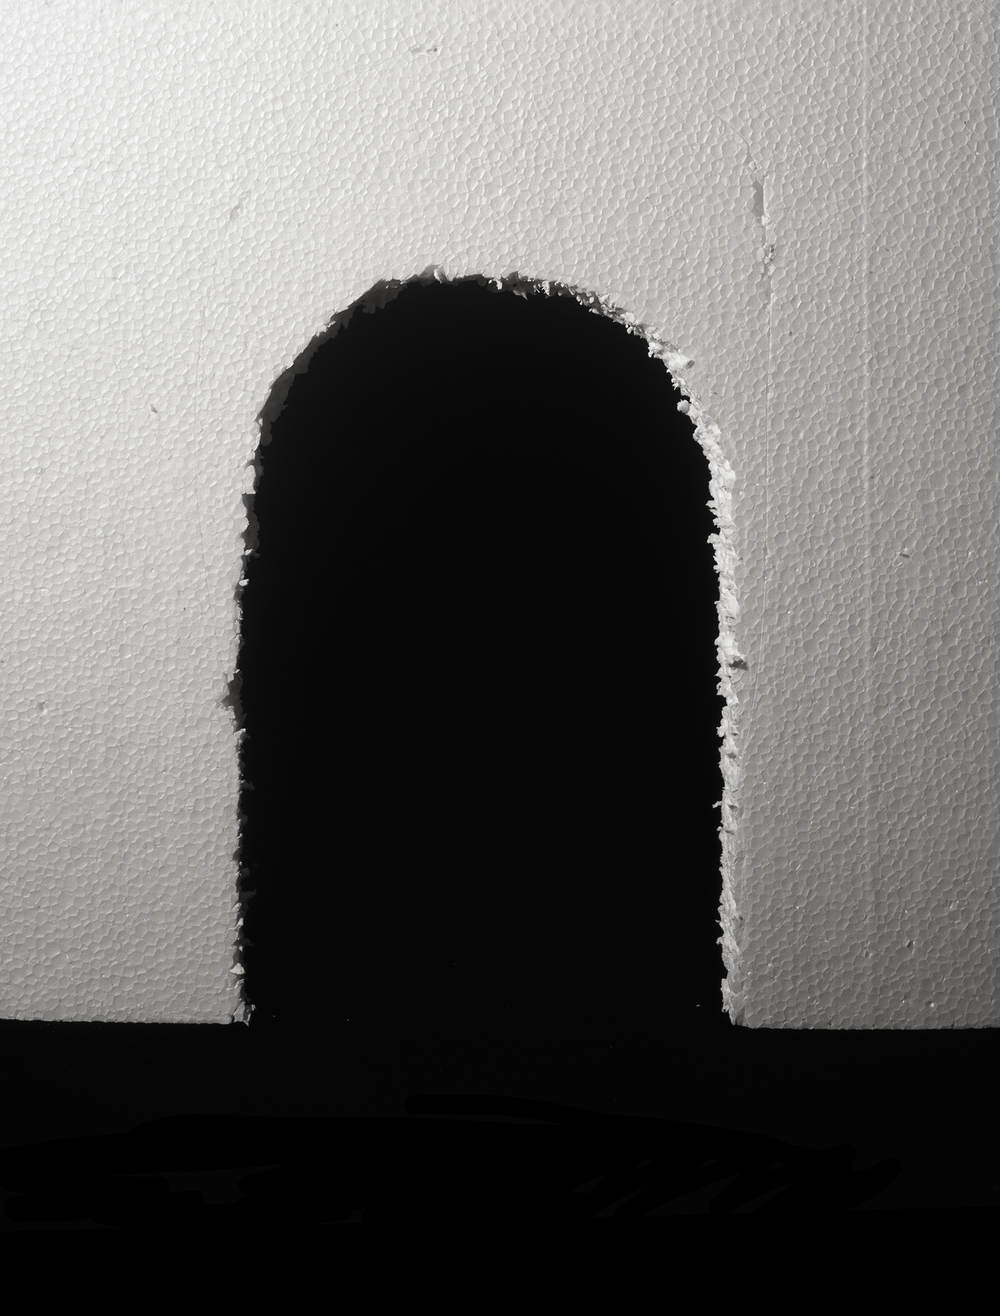 Archway,C-Print,27 x 21.5 inches, 2014